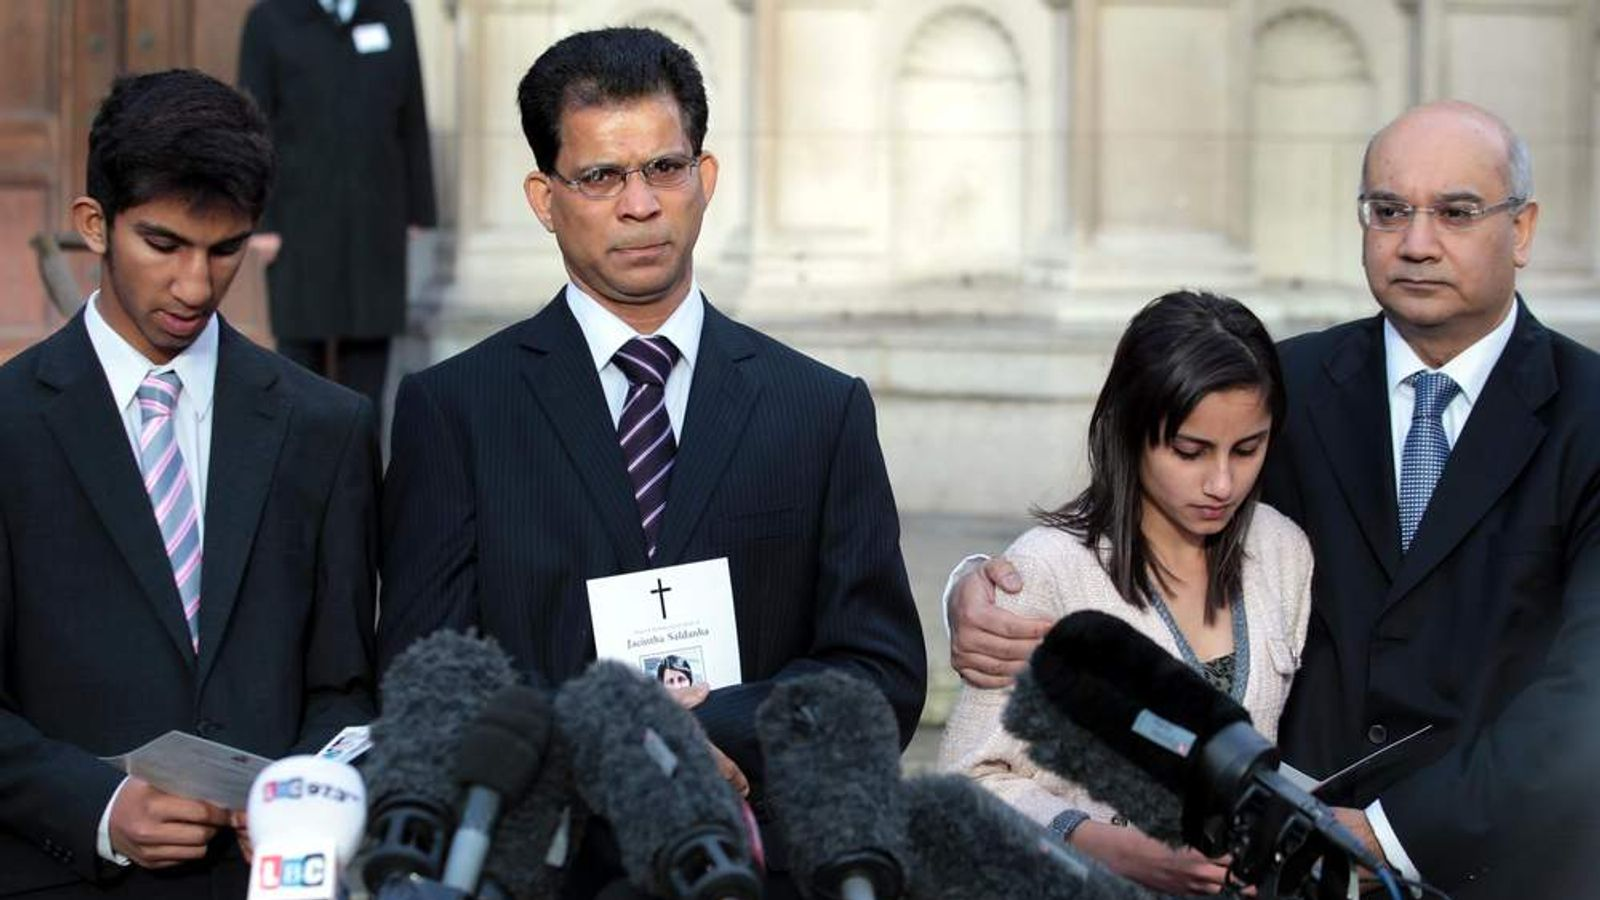 The family of nurse Jacintha Saldanha speak outside Westminster Cathedral